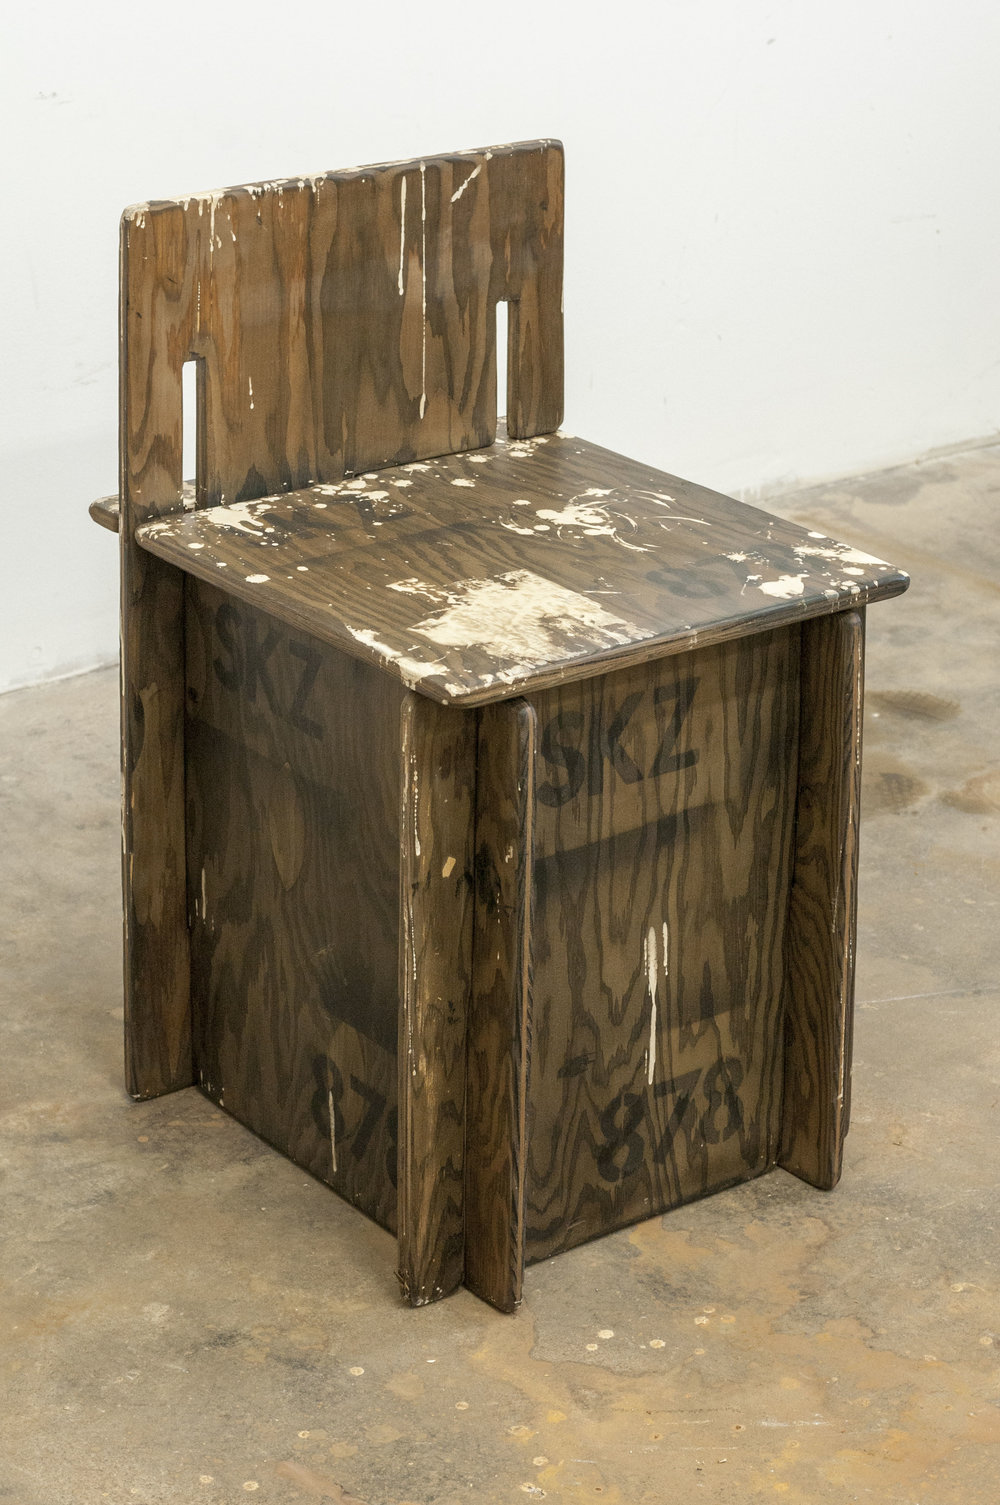 Dan Levenson  SKZ Student Chair Number 878 , 2016 wood, oil 74 x 49 x 43 cm 29 1/8 x 19 9/32 x 16 15/16 inches